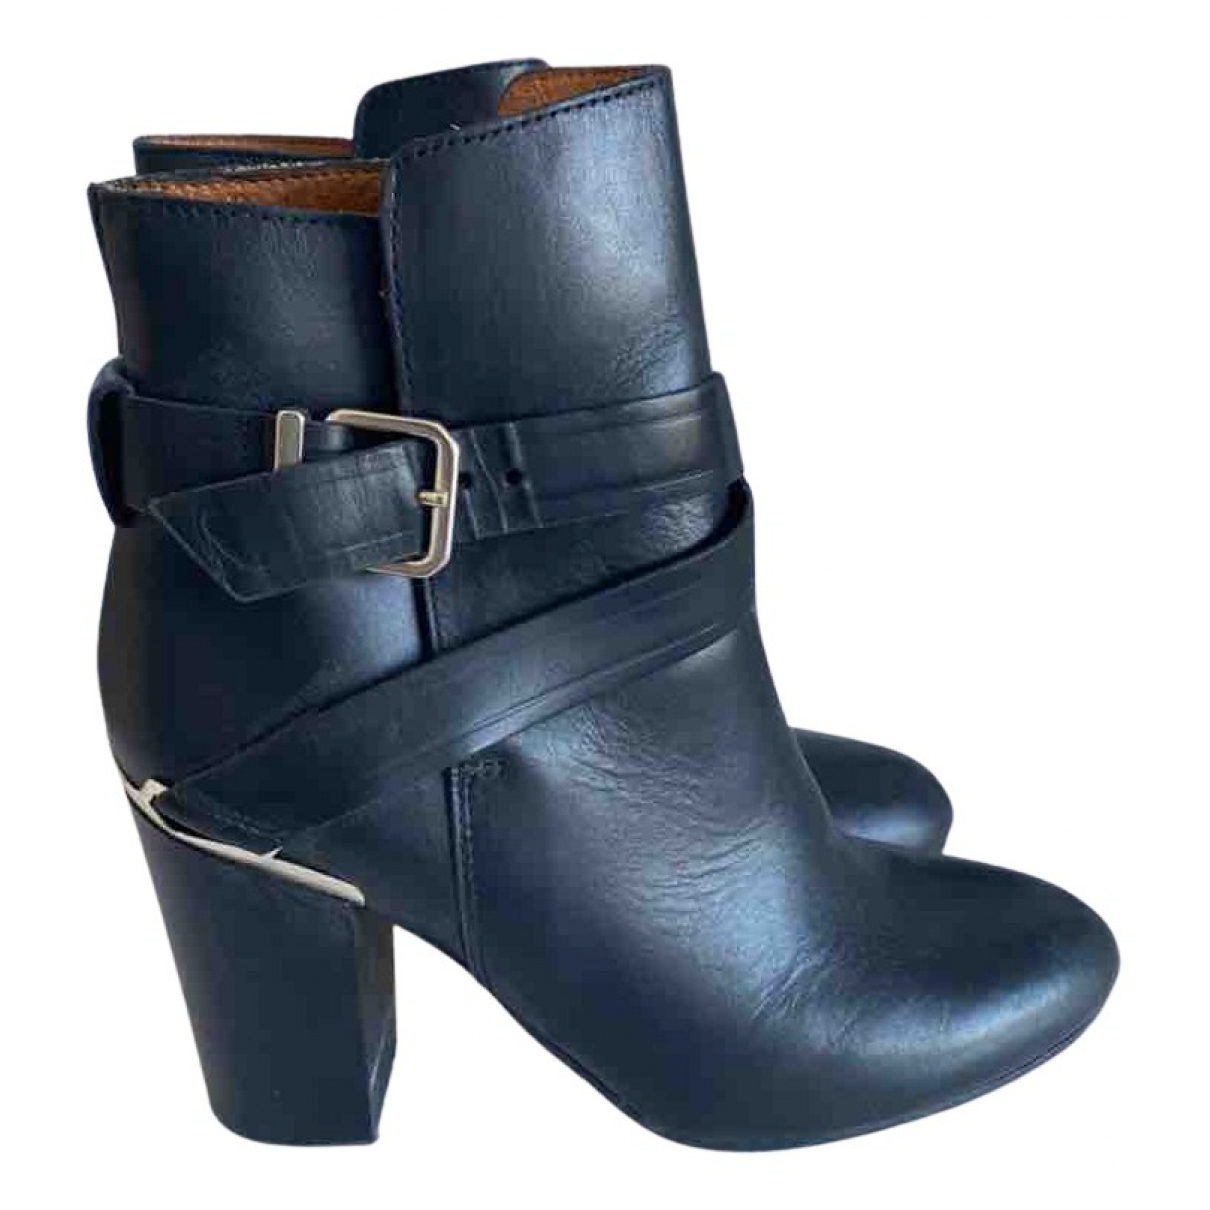 & Stories N Black Leather Boots for Women 36 EU